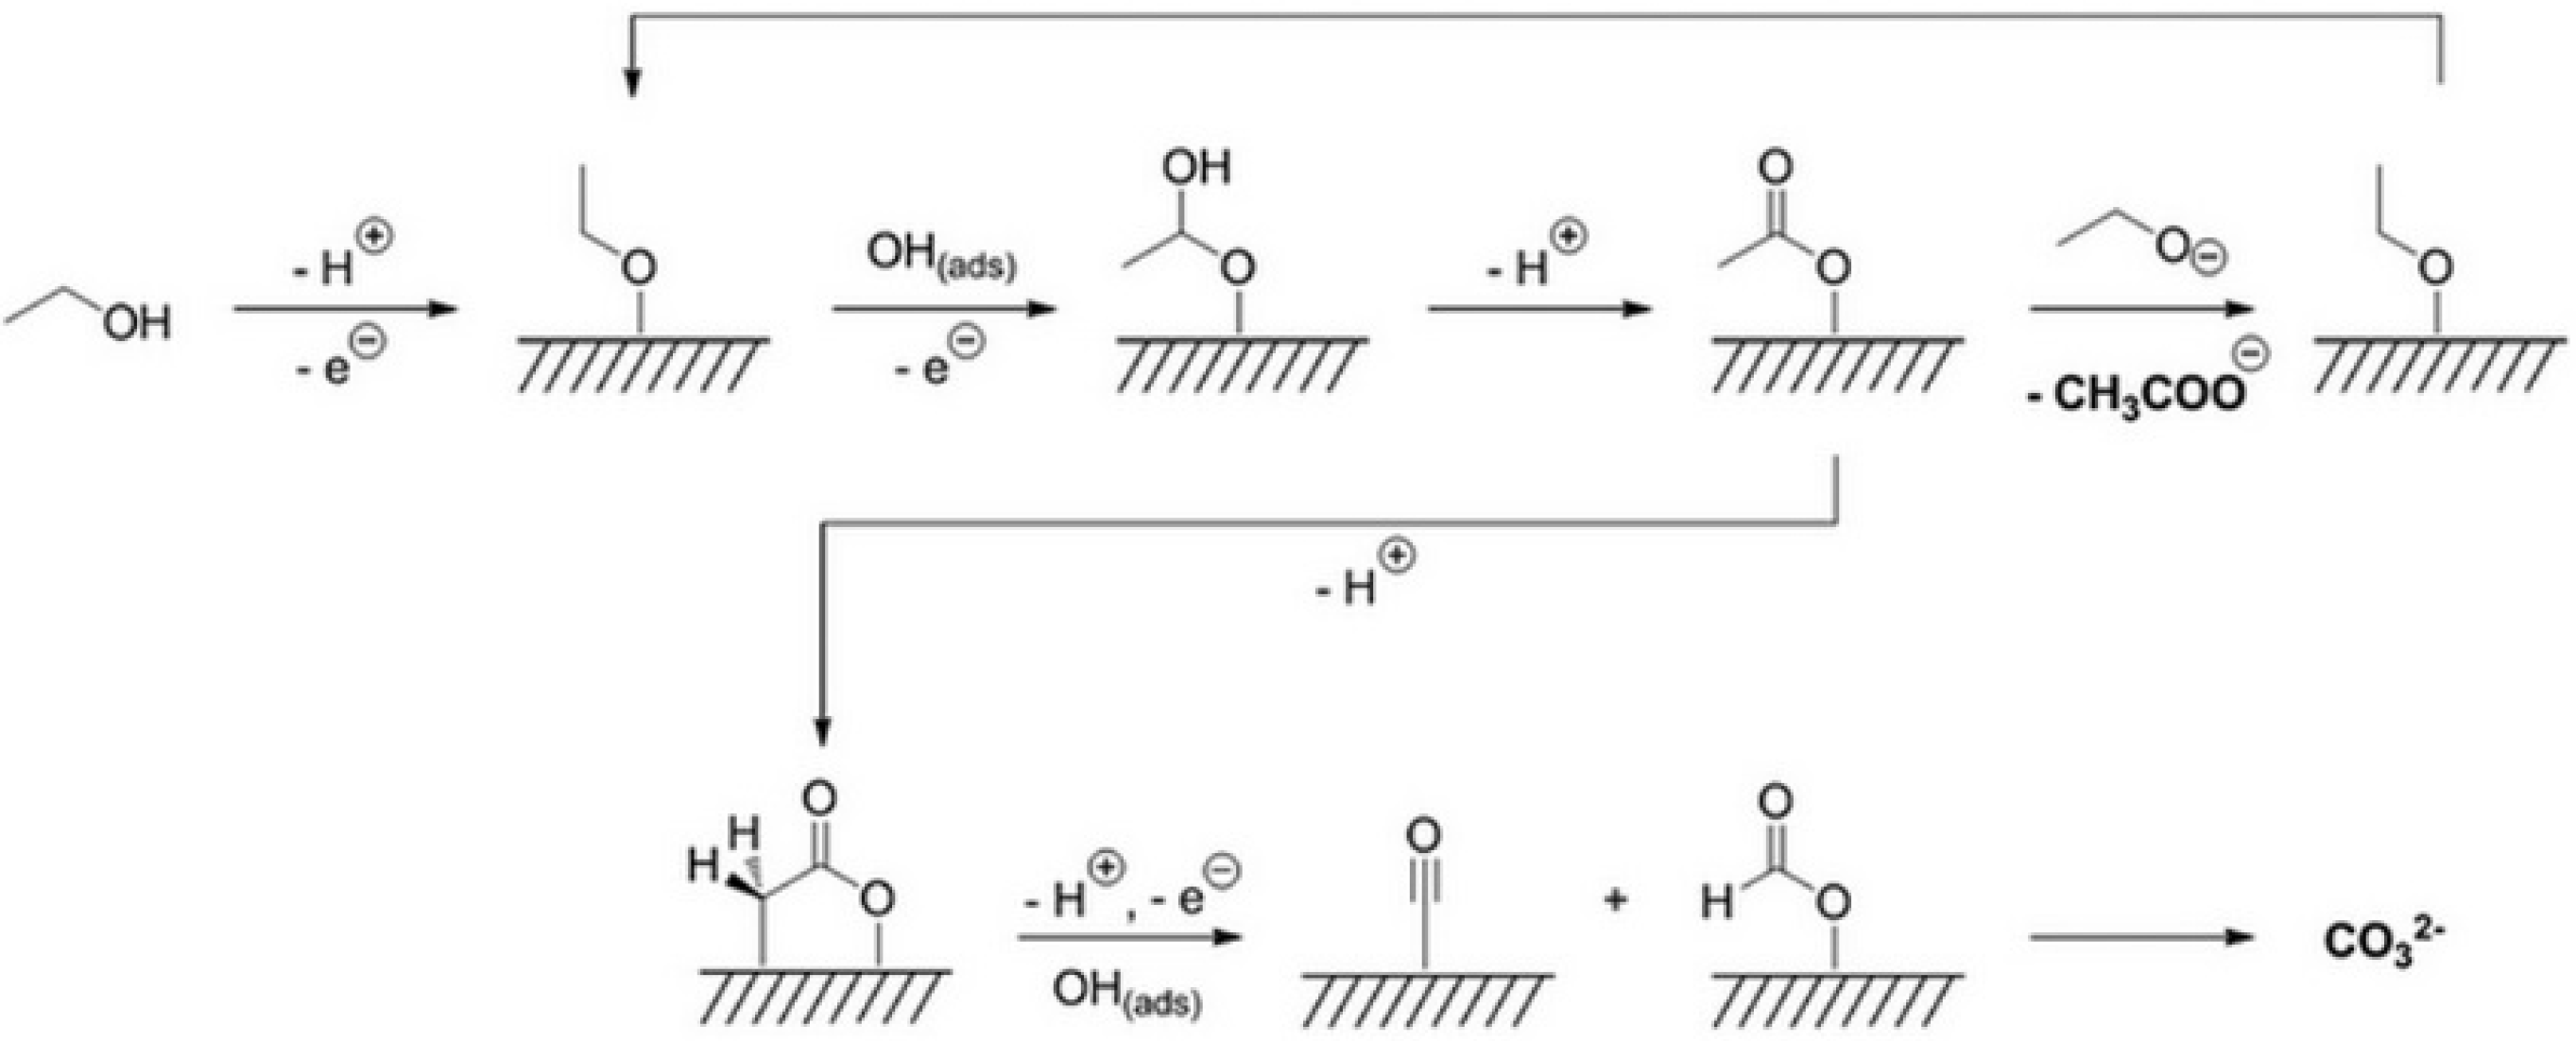 photocatalytic oxidation of ethanol catalyzed by Photocatalytic oxidation of aromatic aldehydes to related carboxylic acids was investigated with molecular oxygen in the presence of preyssler anion synthesis and reactivity in inorganic, metal-organic green and reusable heteropolyacid catalyzed oxidation of benzylic.